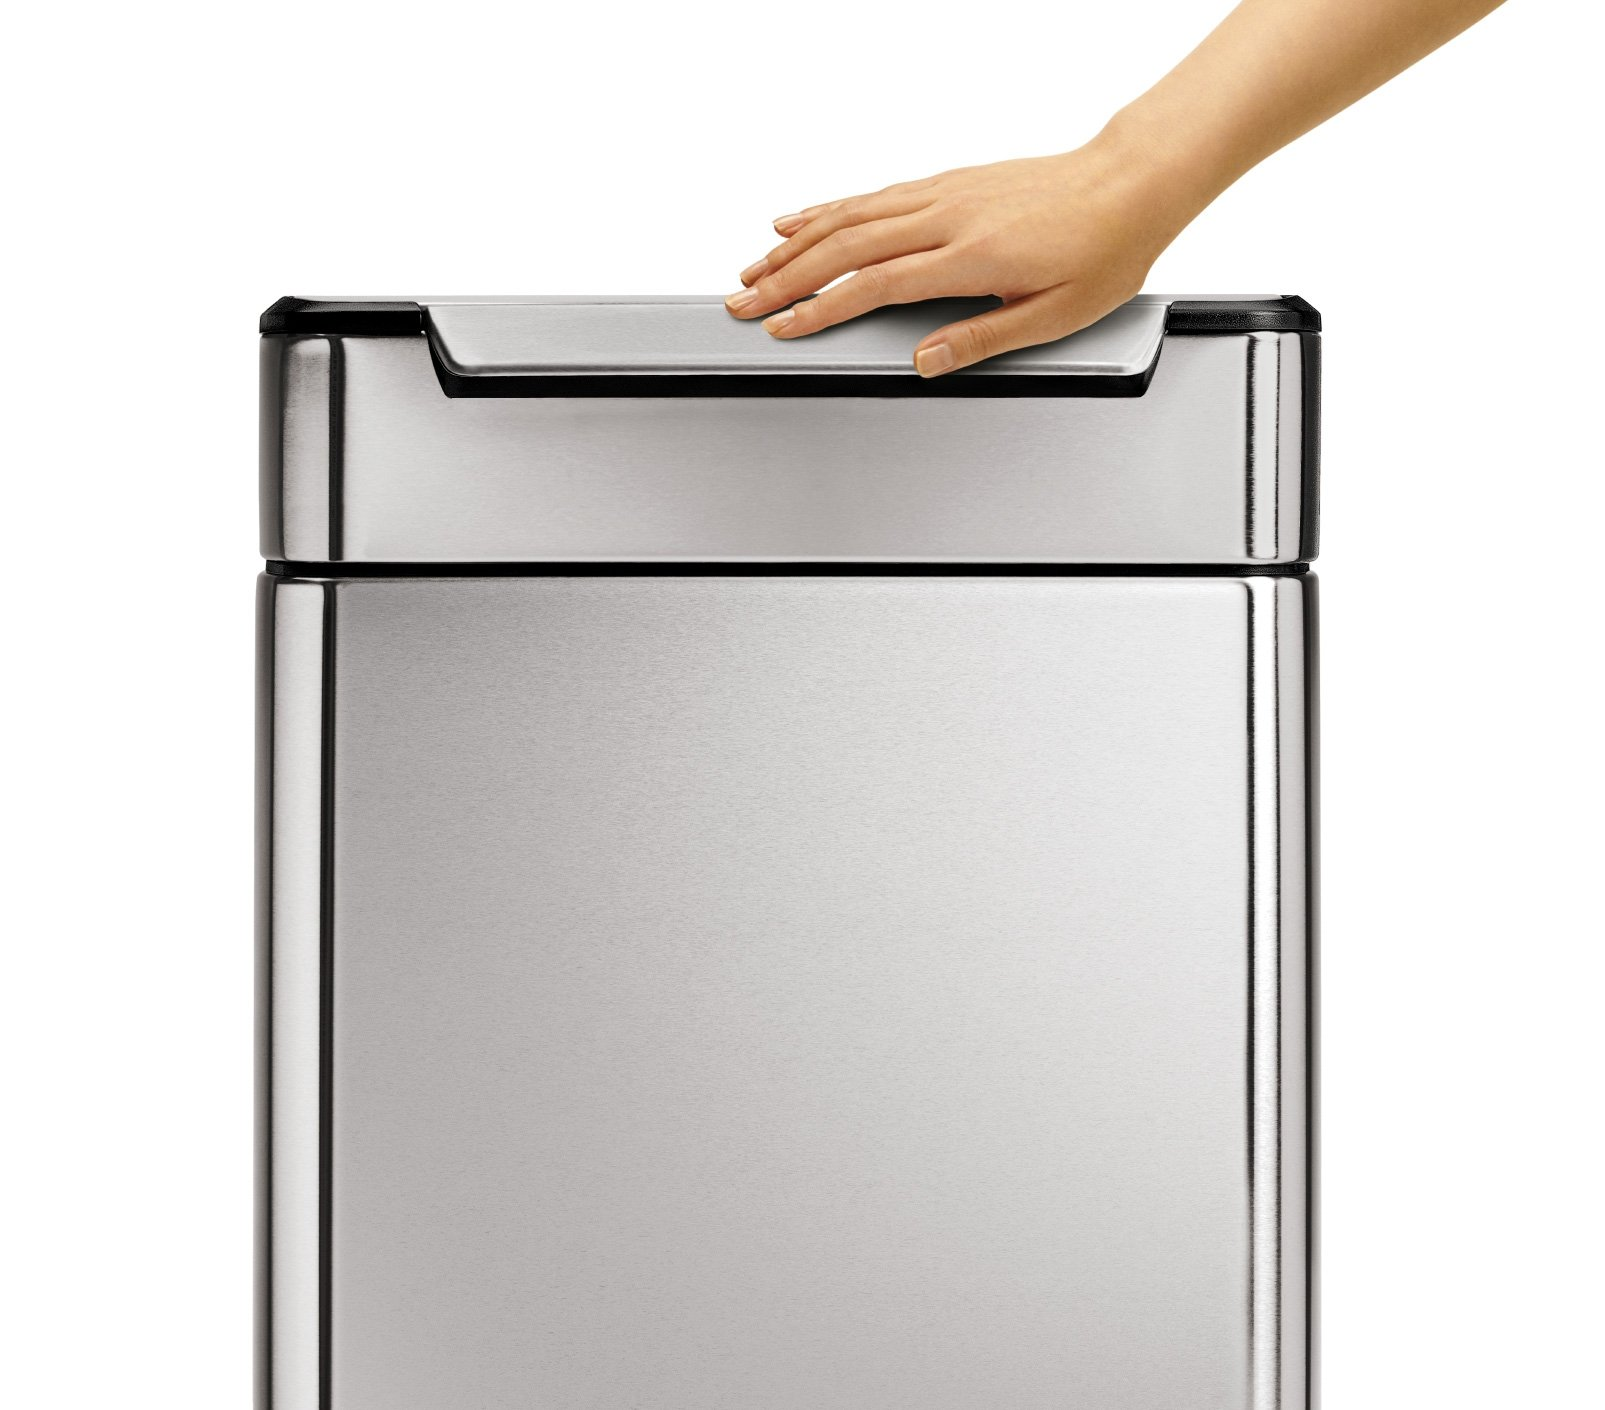 simplehuman 48 Liter / 12.7 Gallon Stainless Steel Touch-Bar Kitchen Dual Compartment Trash Can Recycler, Brushed Stainless Steel, ADA-Compliant